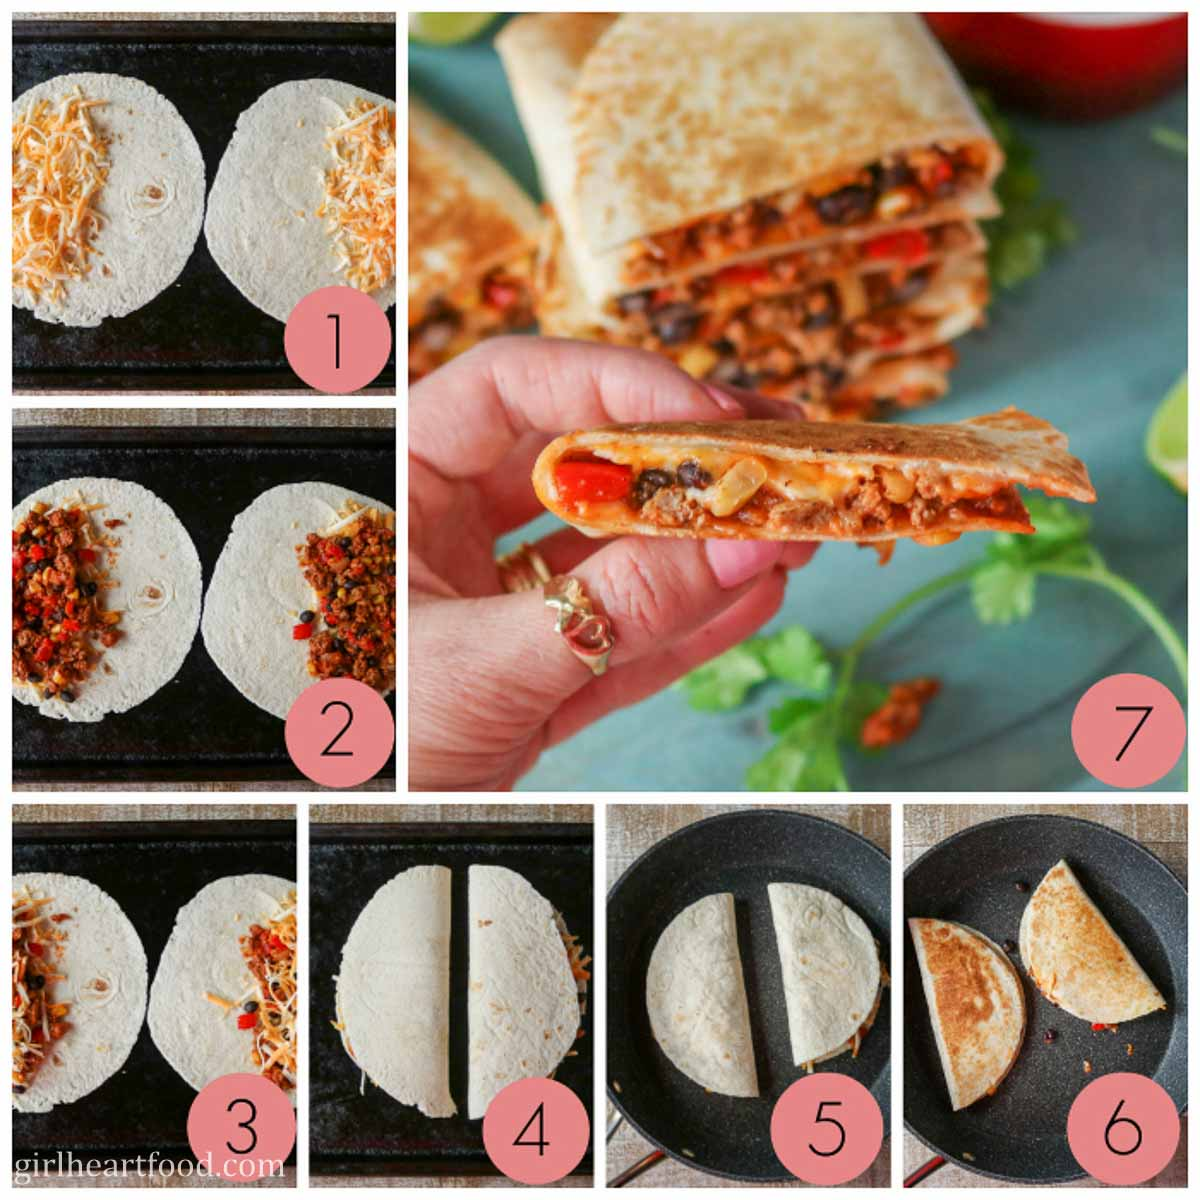 Collage of steps to make a ground turkey quesadilla recipe.